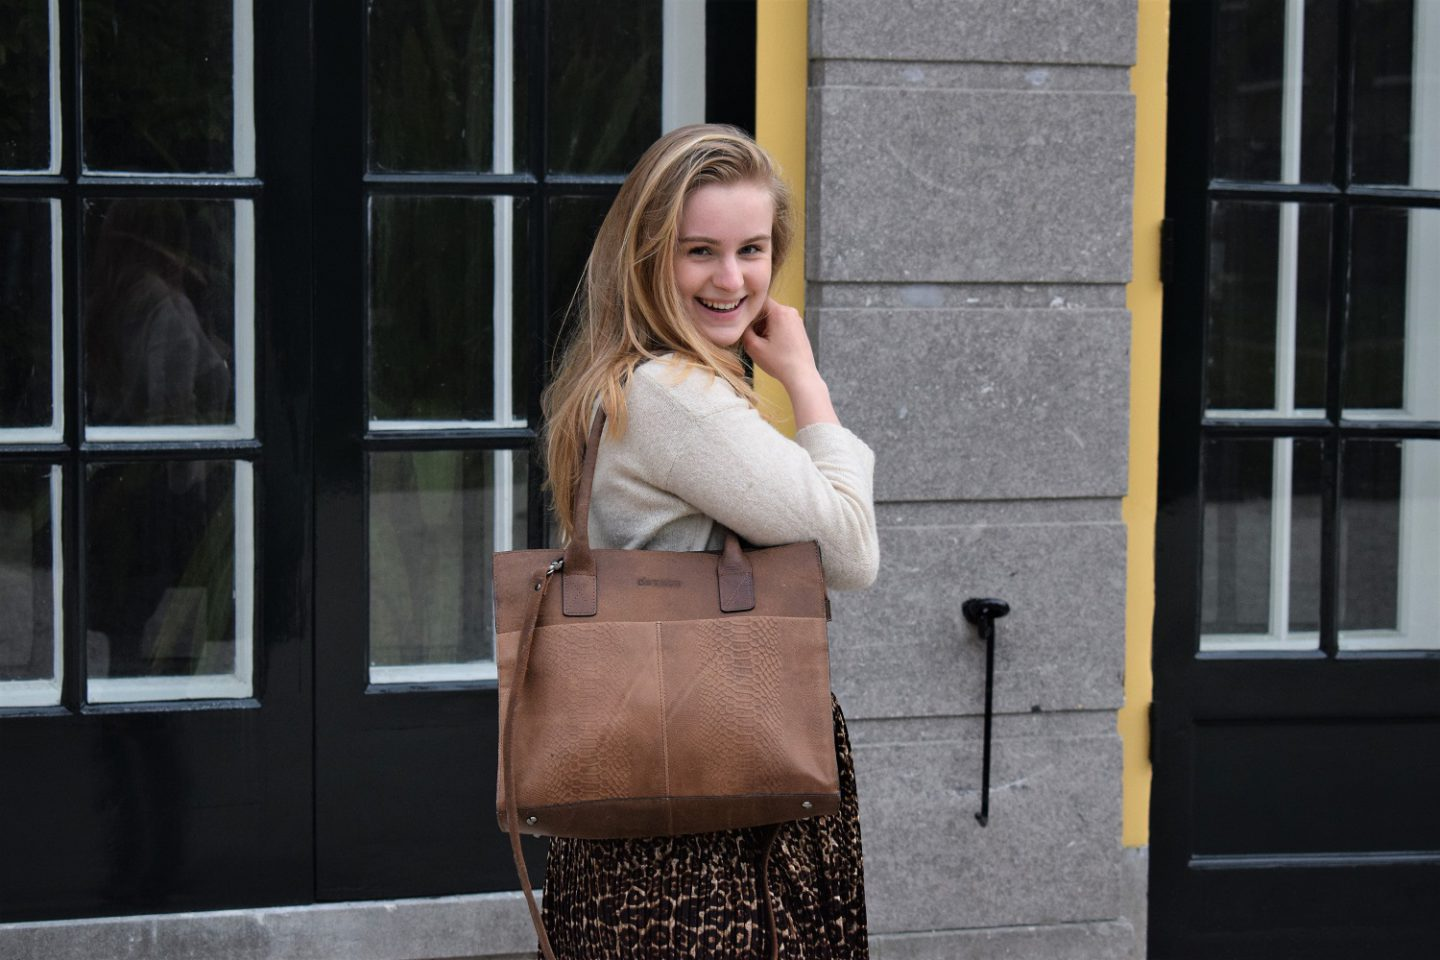 Outfit, The Bag Store, DSTRCT, De ideale tas, samenwerking